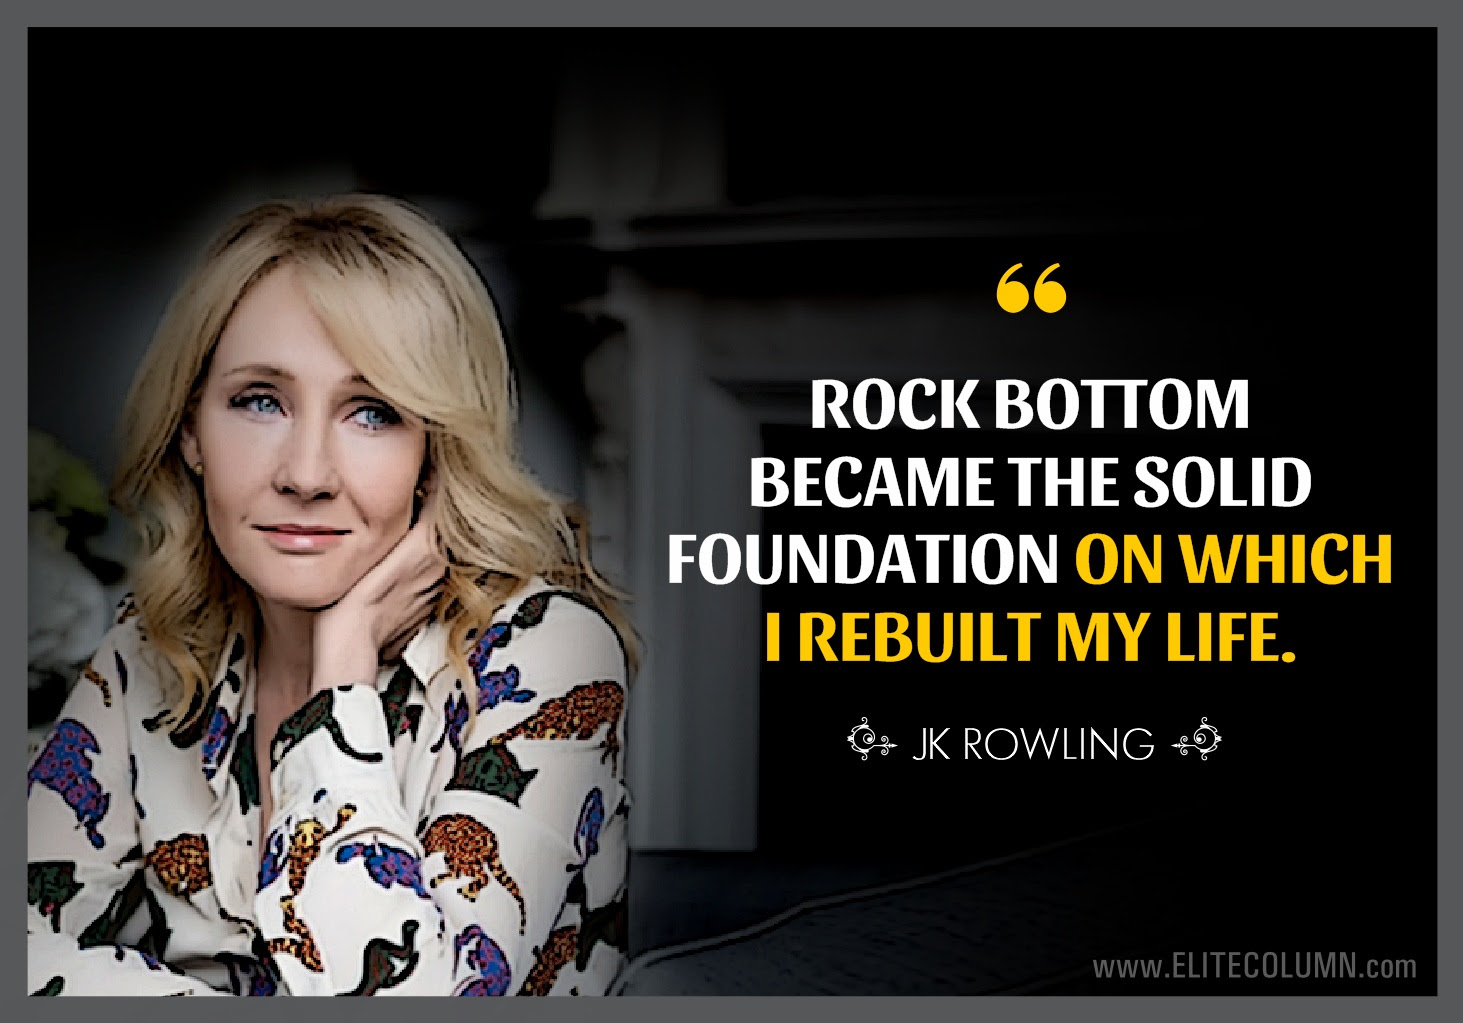 Jk Rowling Quotes 10 Elitecolumn